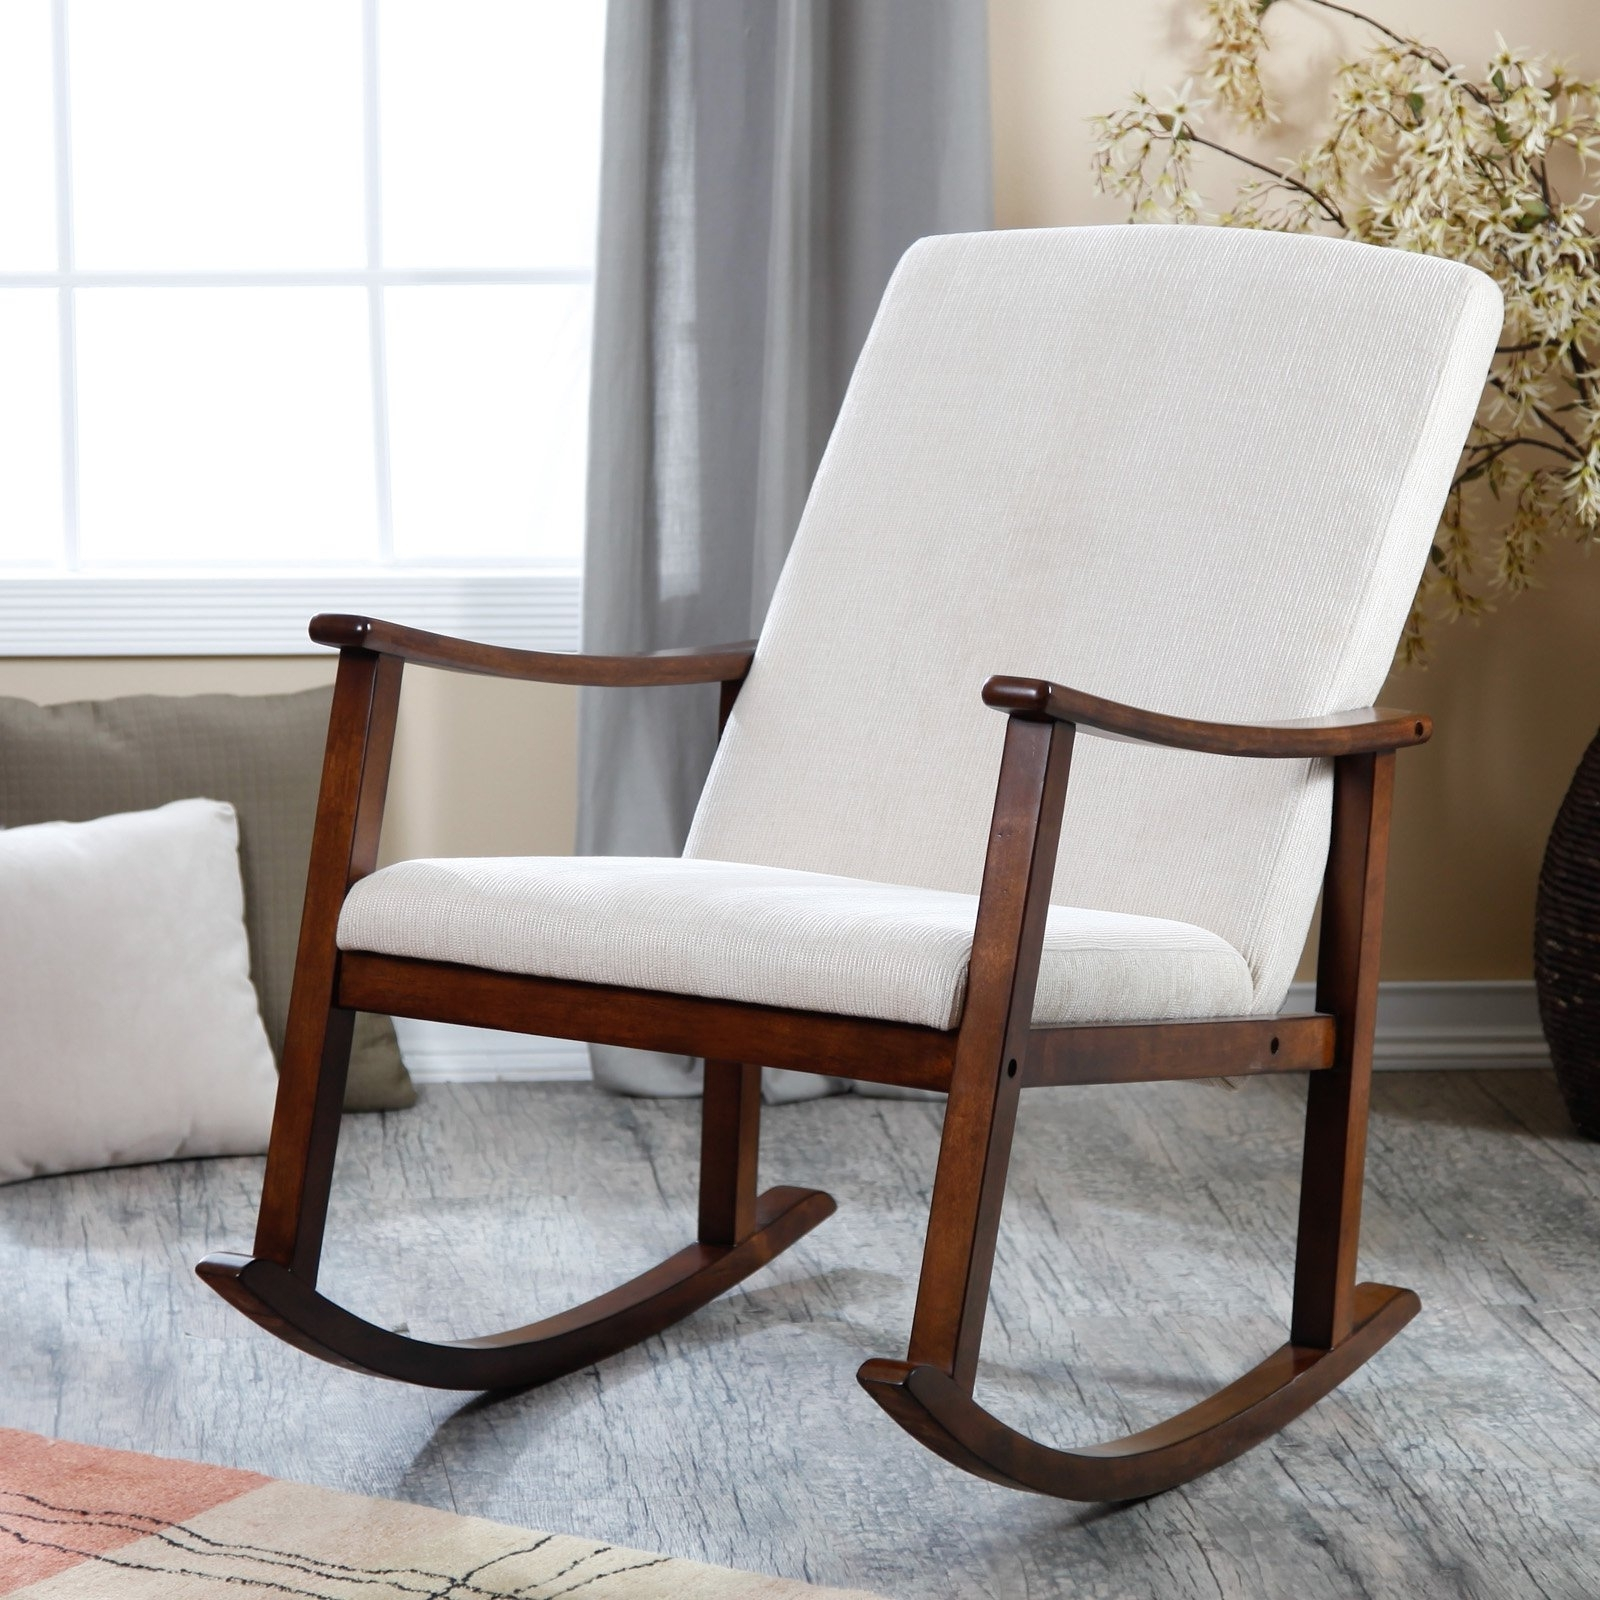 Living Room Furniture : Rocking Chairs For Baby Nursery Wooden Intended For Most Recent Rocking Chairs For Nursing (View 4 of 15)